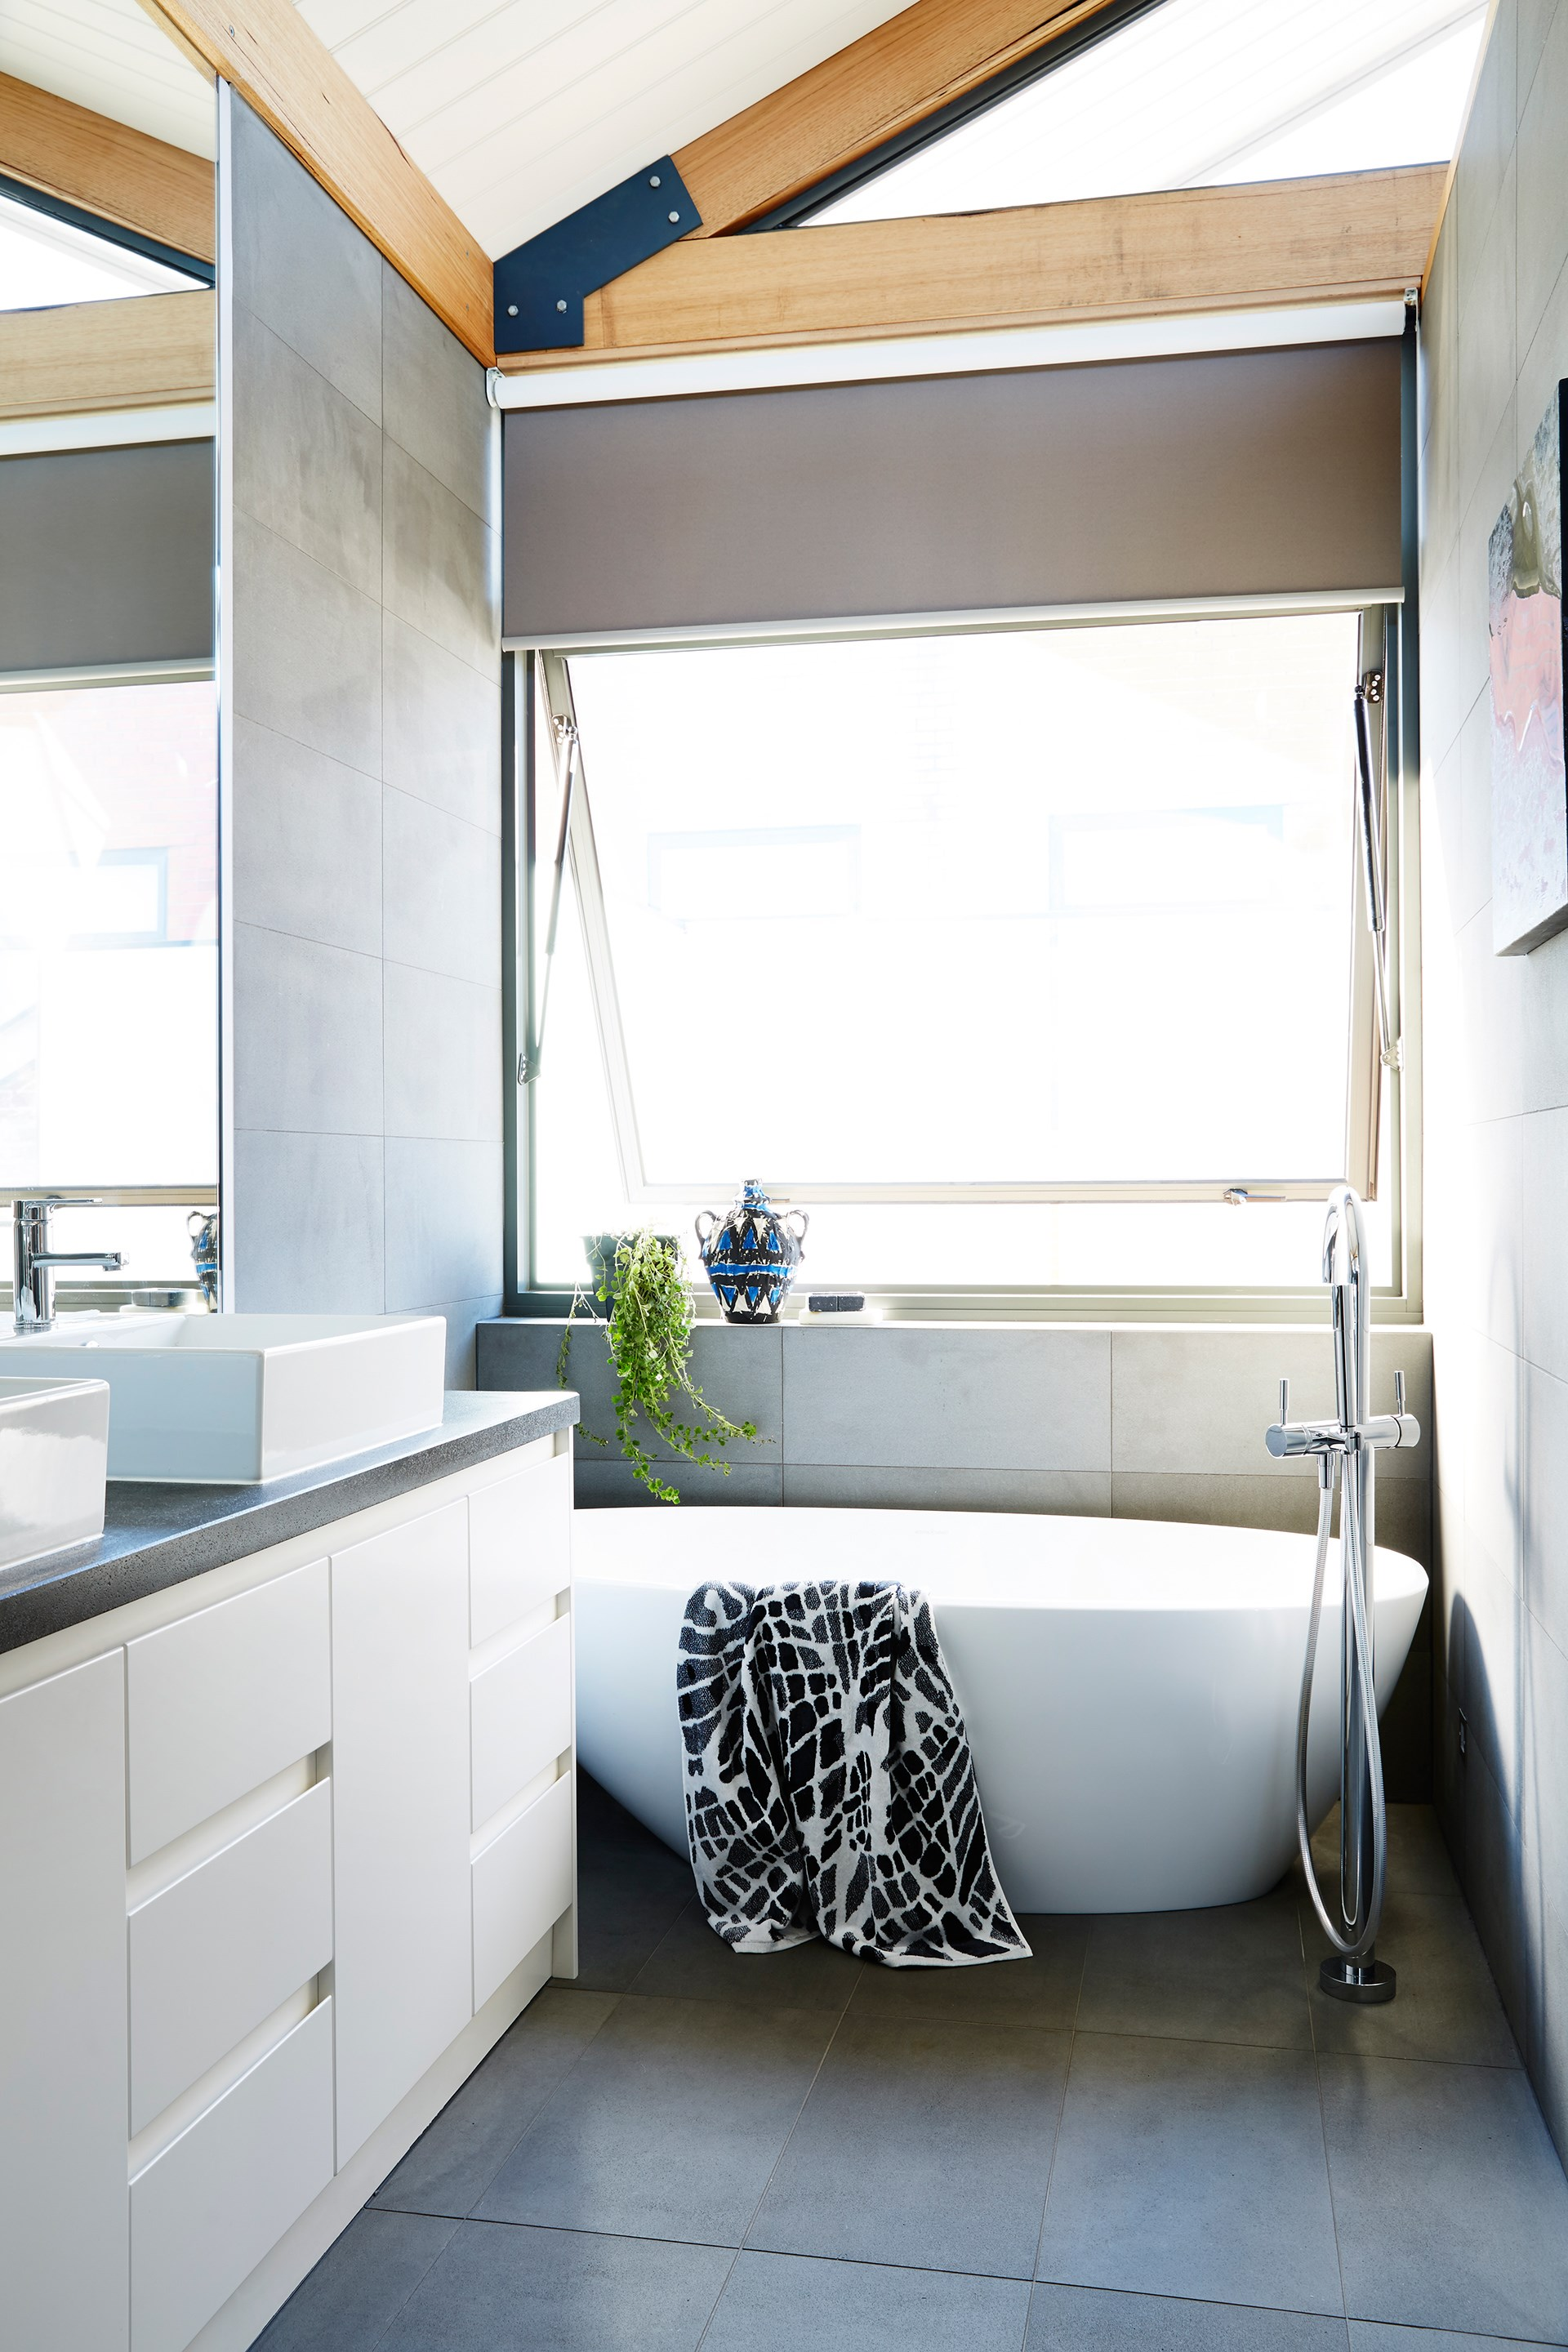 """Large bluestone tiles add a contemporary yet earthy edge to the bathroom in this [Melbourne warehouse conversion](http://www.homestolove.com.au/cosying-up-a-melbourne-warehouse-conversion-3653